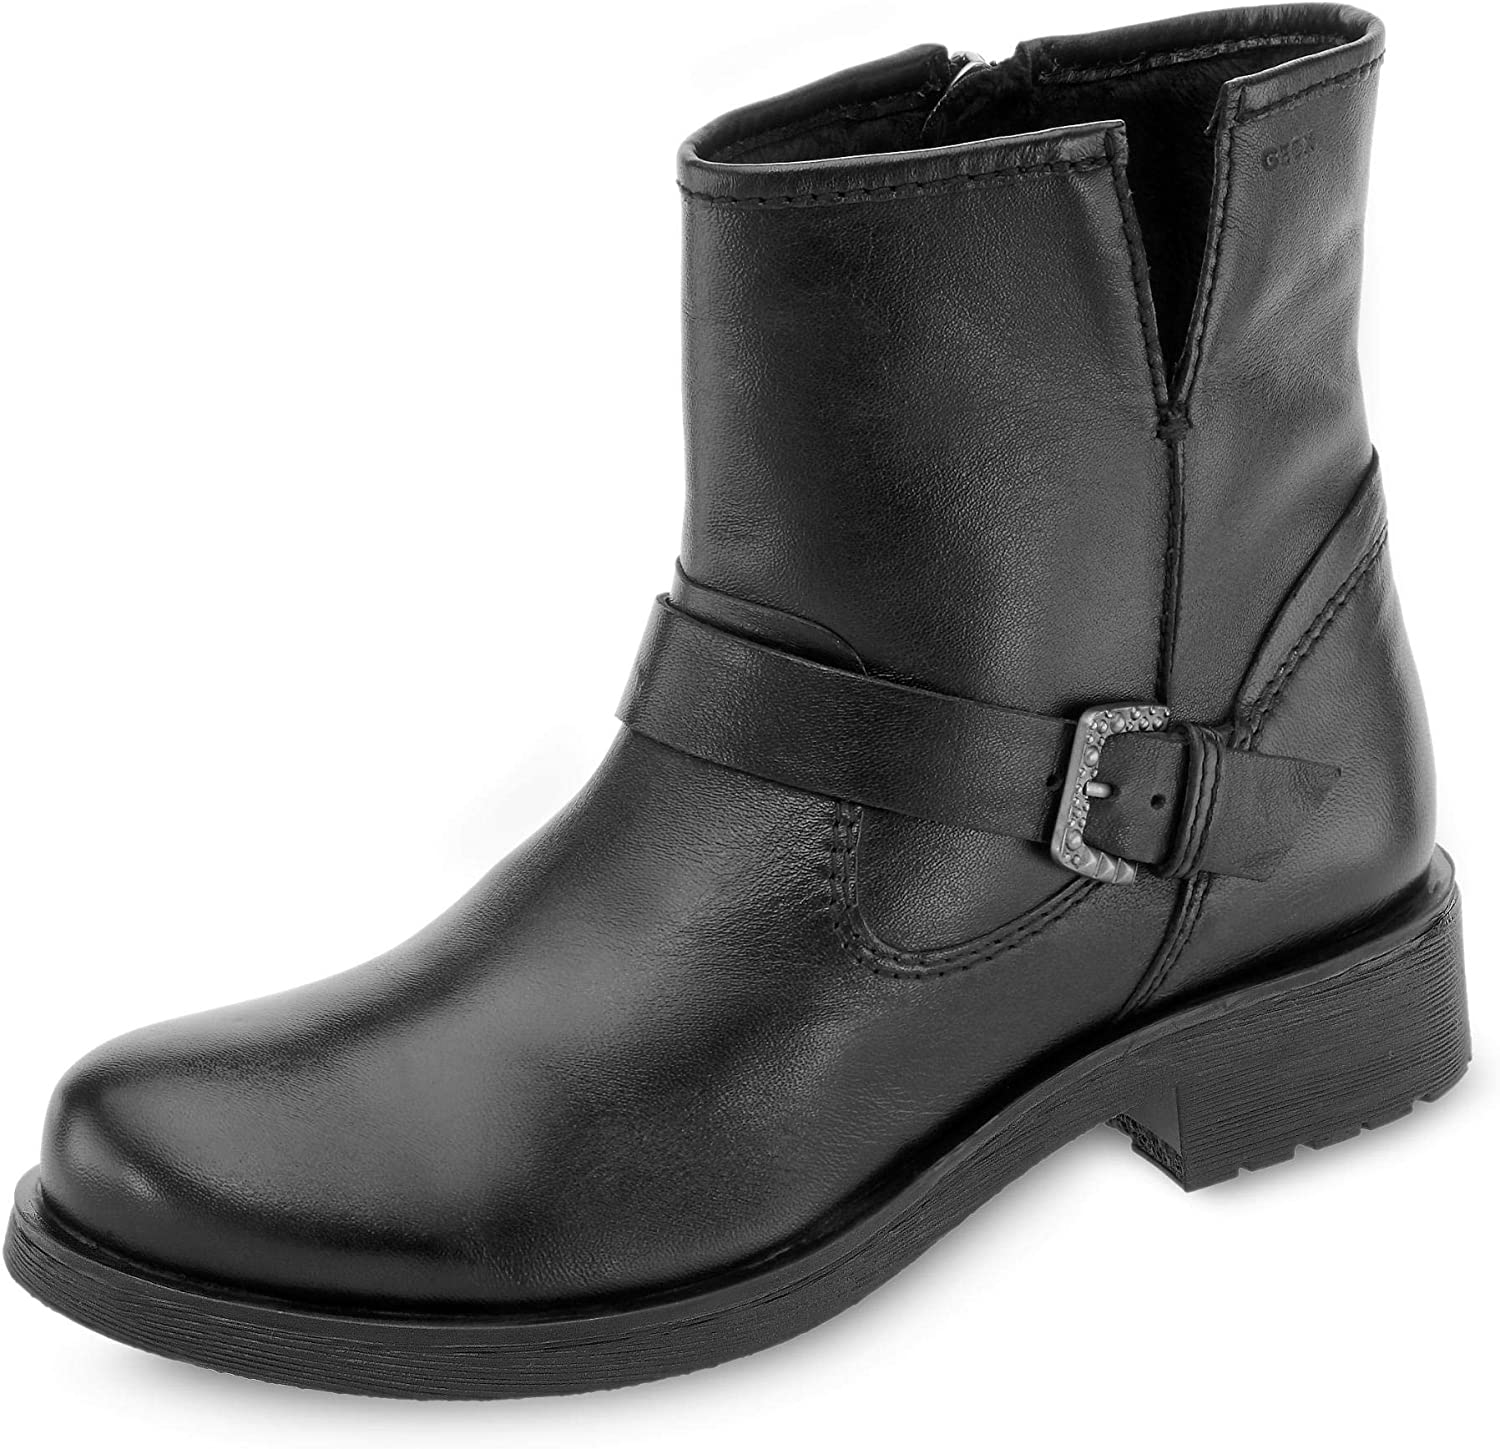 boicotear Pegajoso Rugido  Geox Women's Rawelle Leather Pull-On Boot with Buckle Ankle: Amazon.ca:  Shoes & Handbags